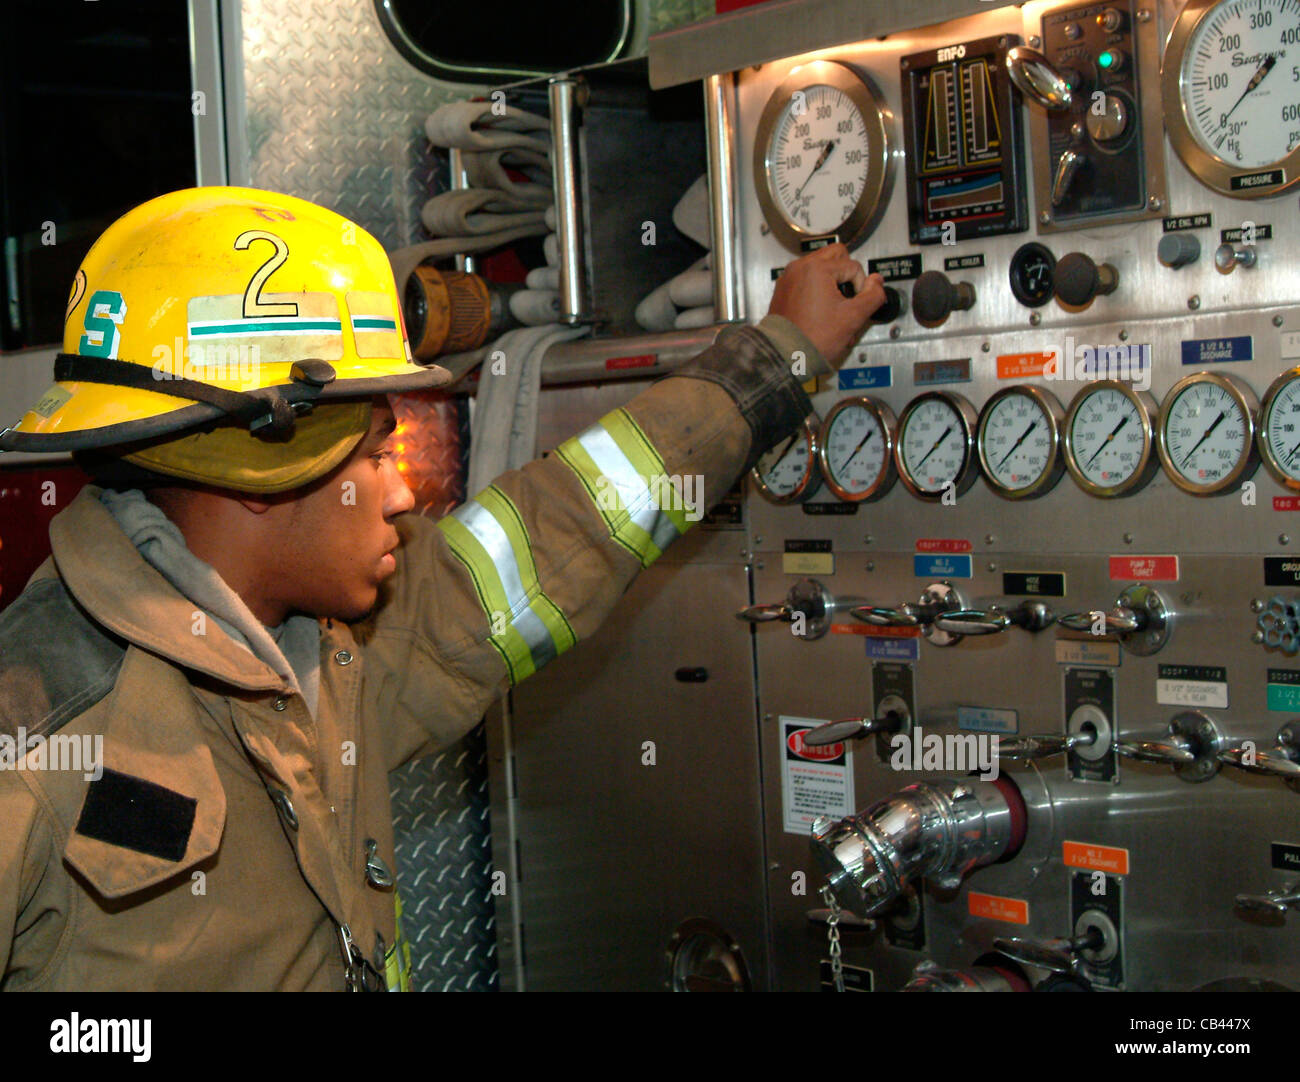 Black Fireman Stock Photos Images Alamy Fire Engine Pump Panel Diagram Firefighter Studies The Gages On Of A Truck During